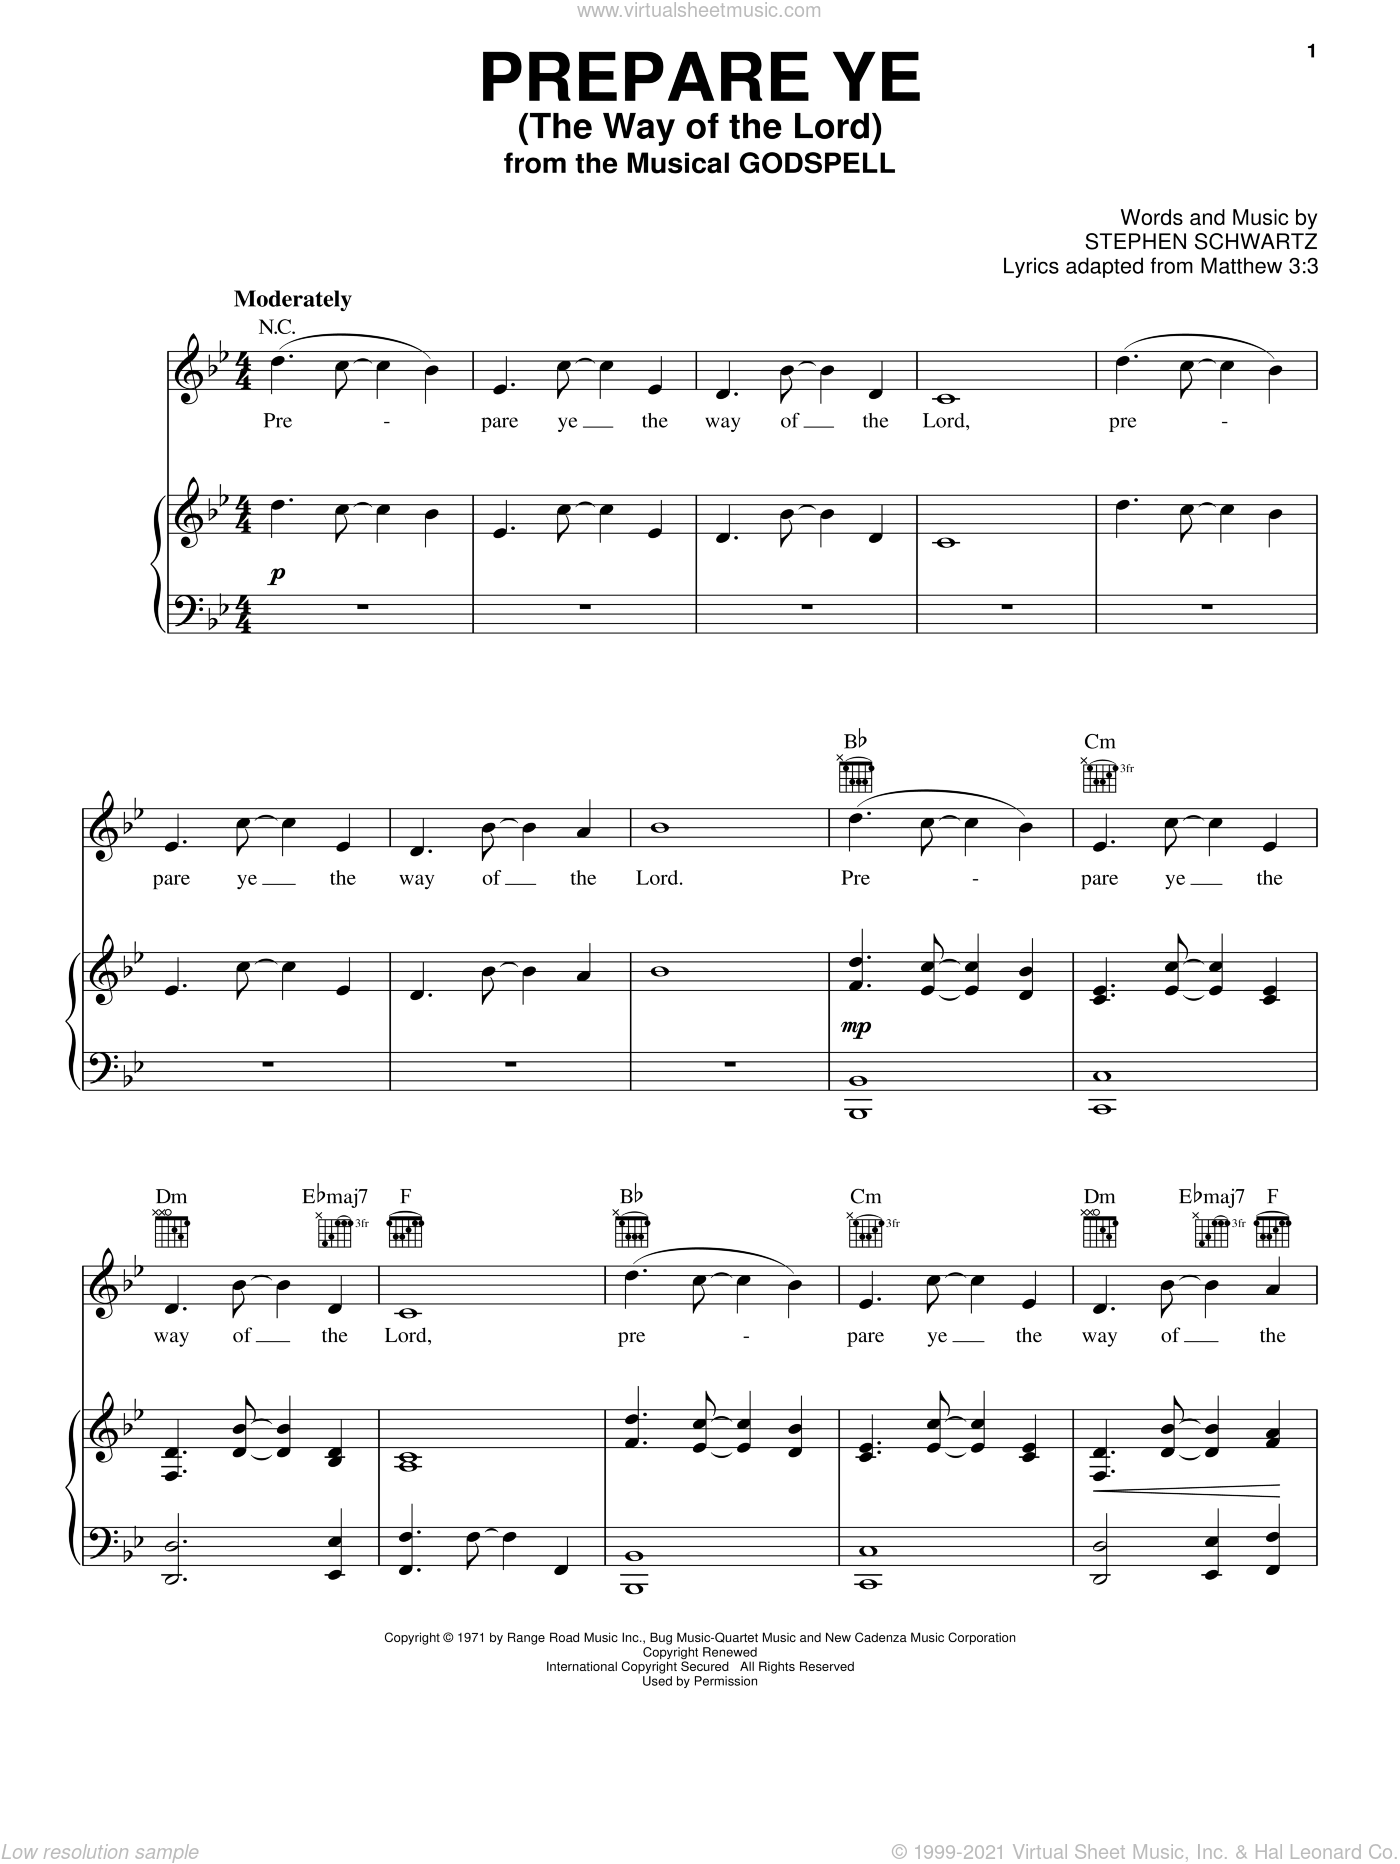 Prepare Ye (The Way Of The Lord) sheet music for voice, piano or guitar by Stephen Schwartz and Godspell (Musical), intermediate skill level